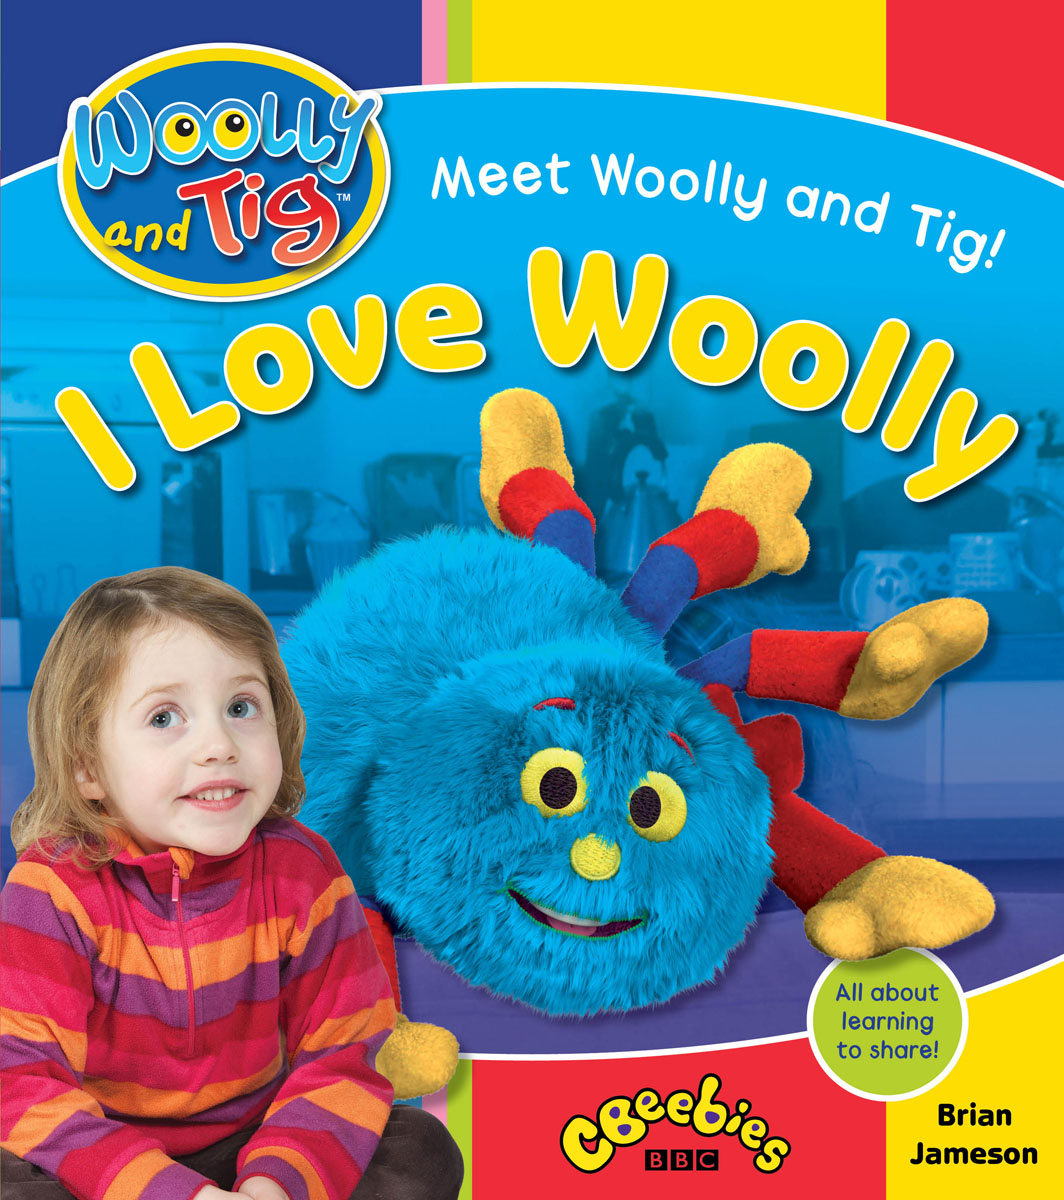 Woolly and Tig: I Love Woolly woolly boolly шарф